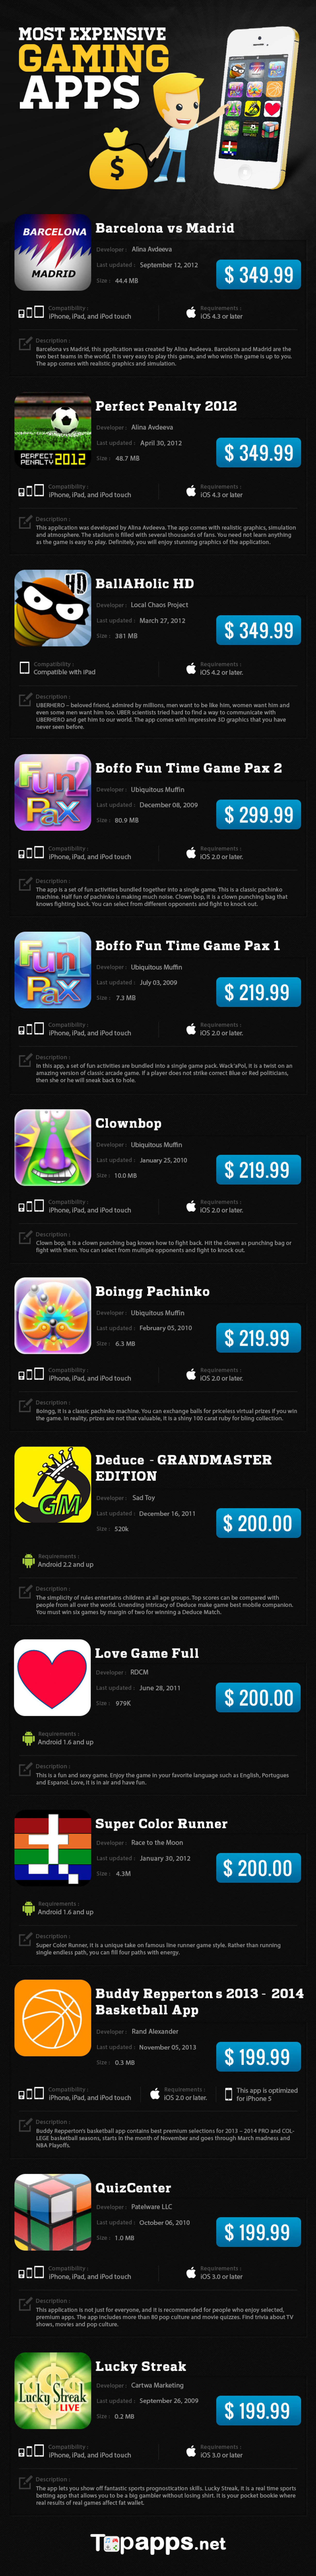 08 13-most-expensive-gaming-apps_5322c170cec7f_w1500